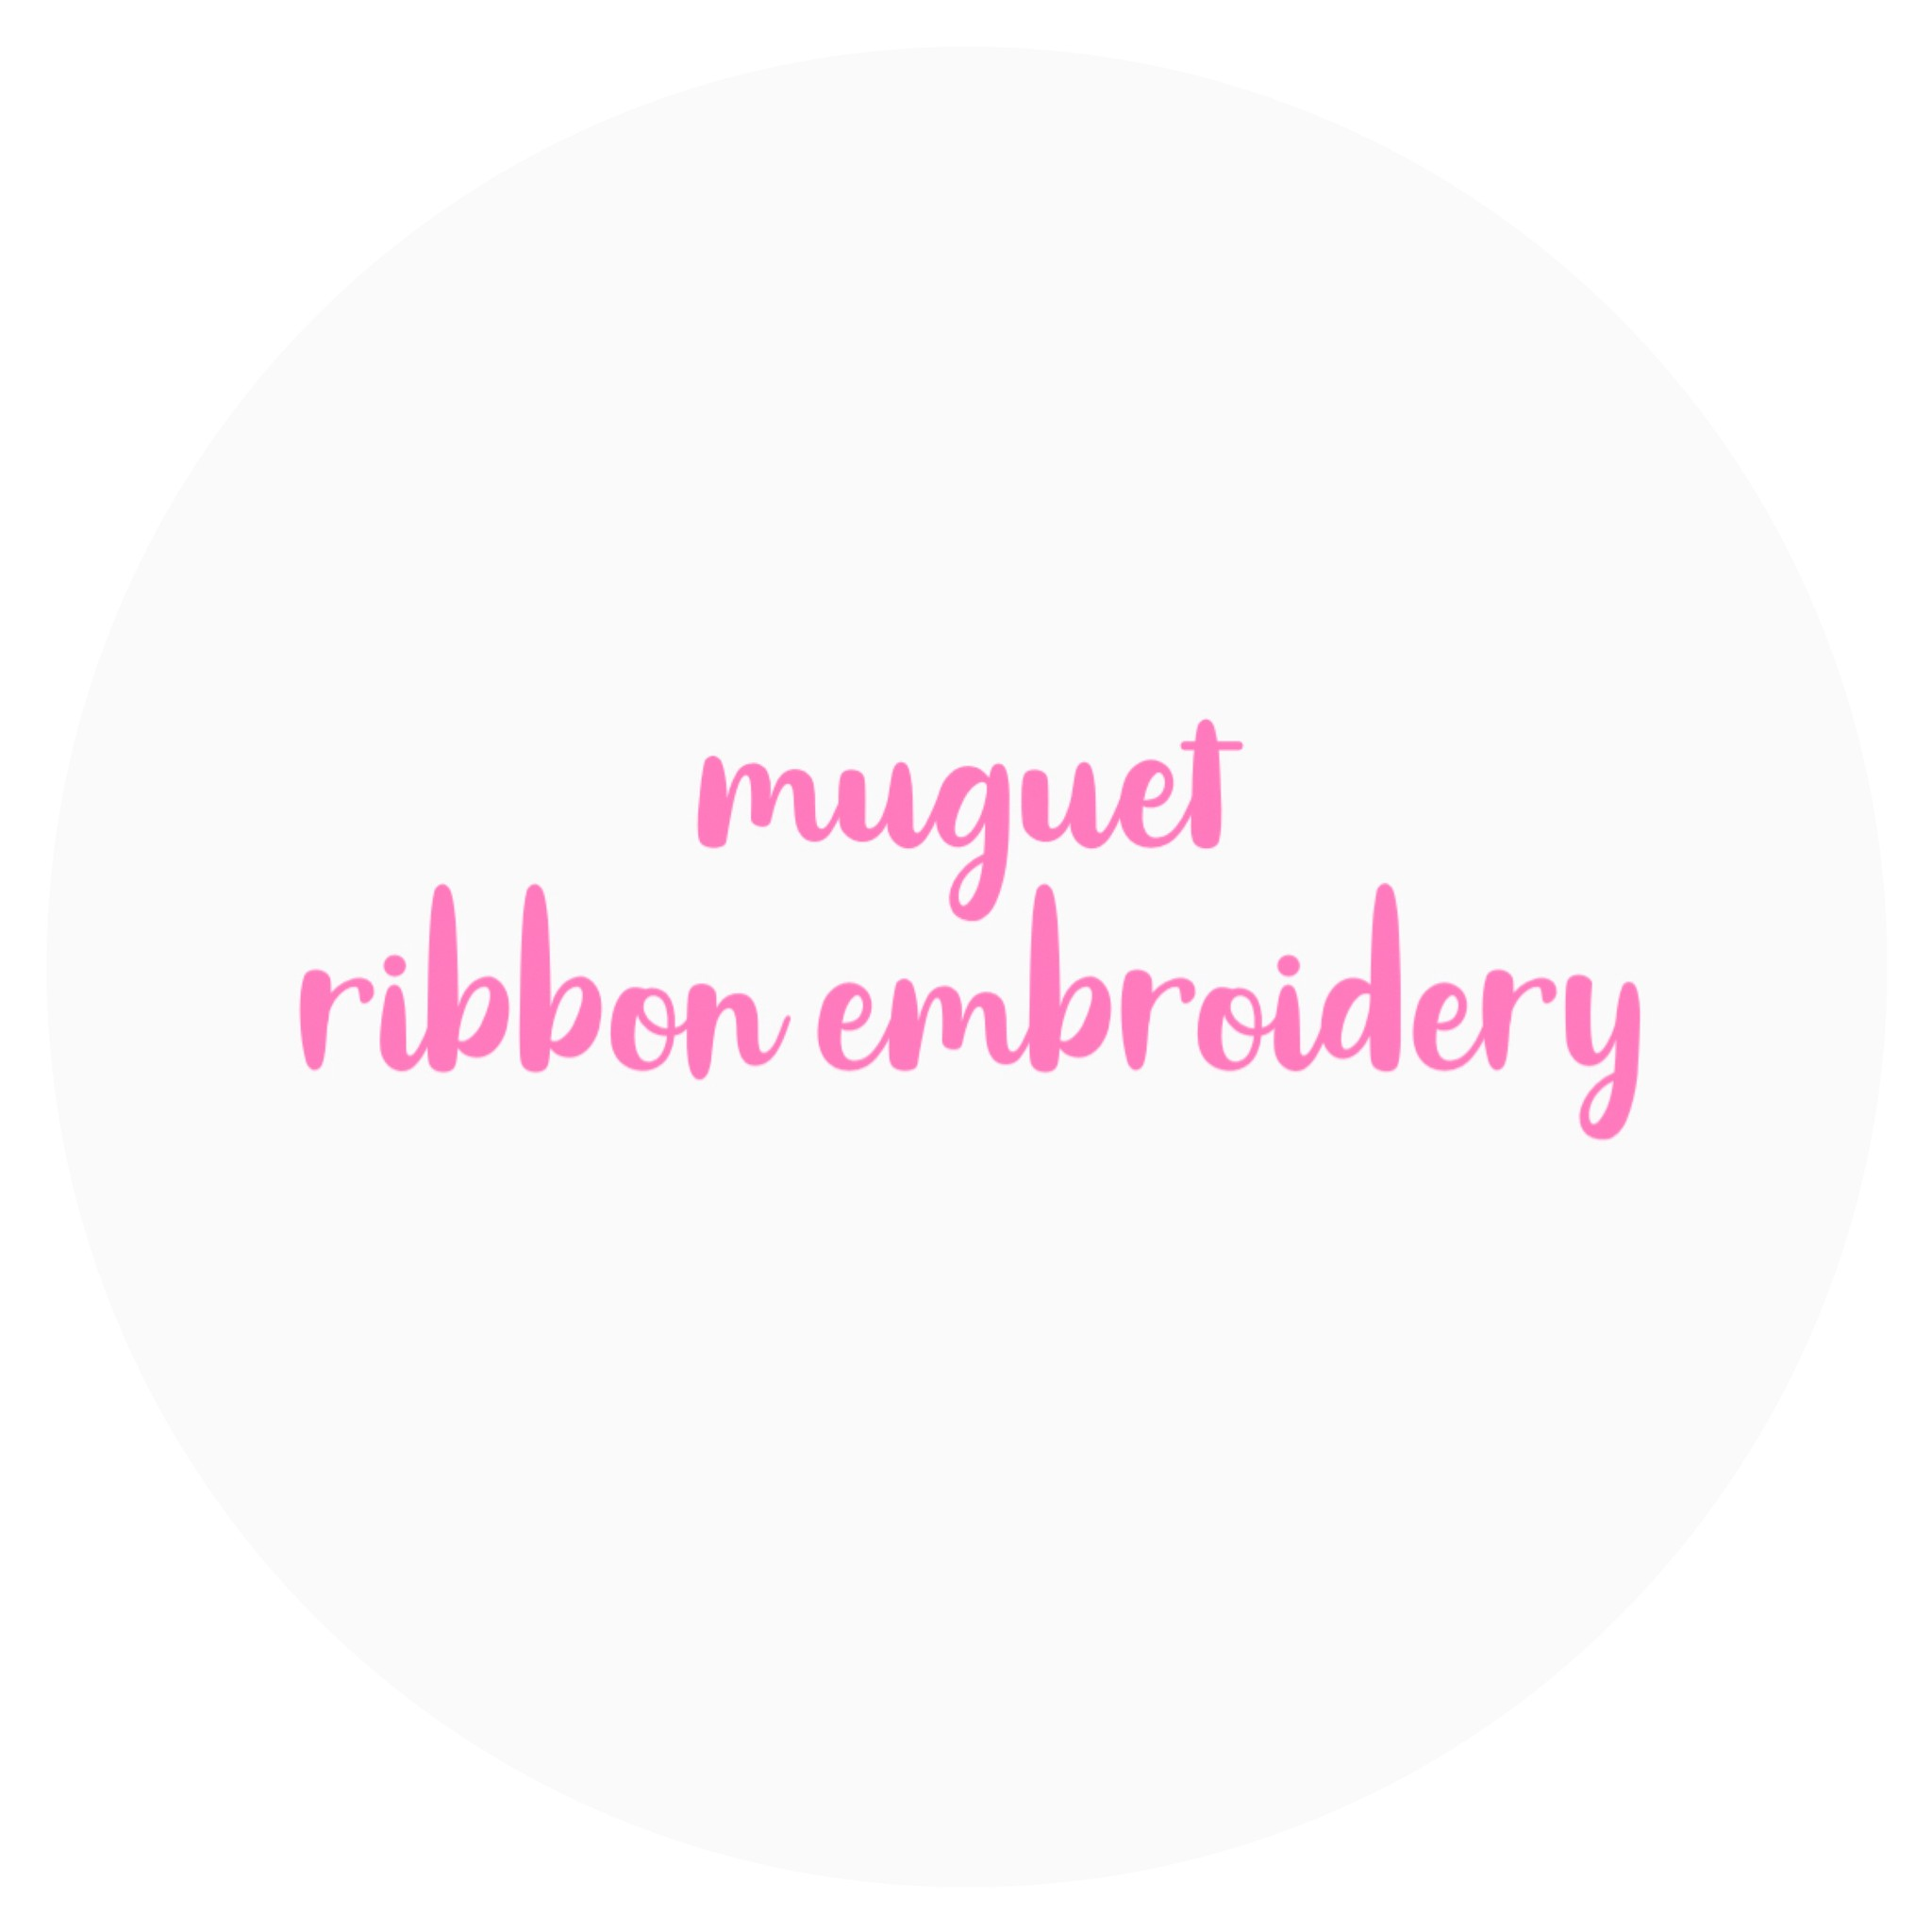 muguet ribbon embroidery